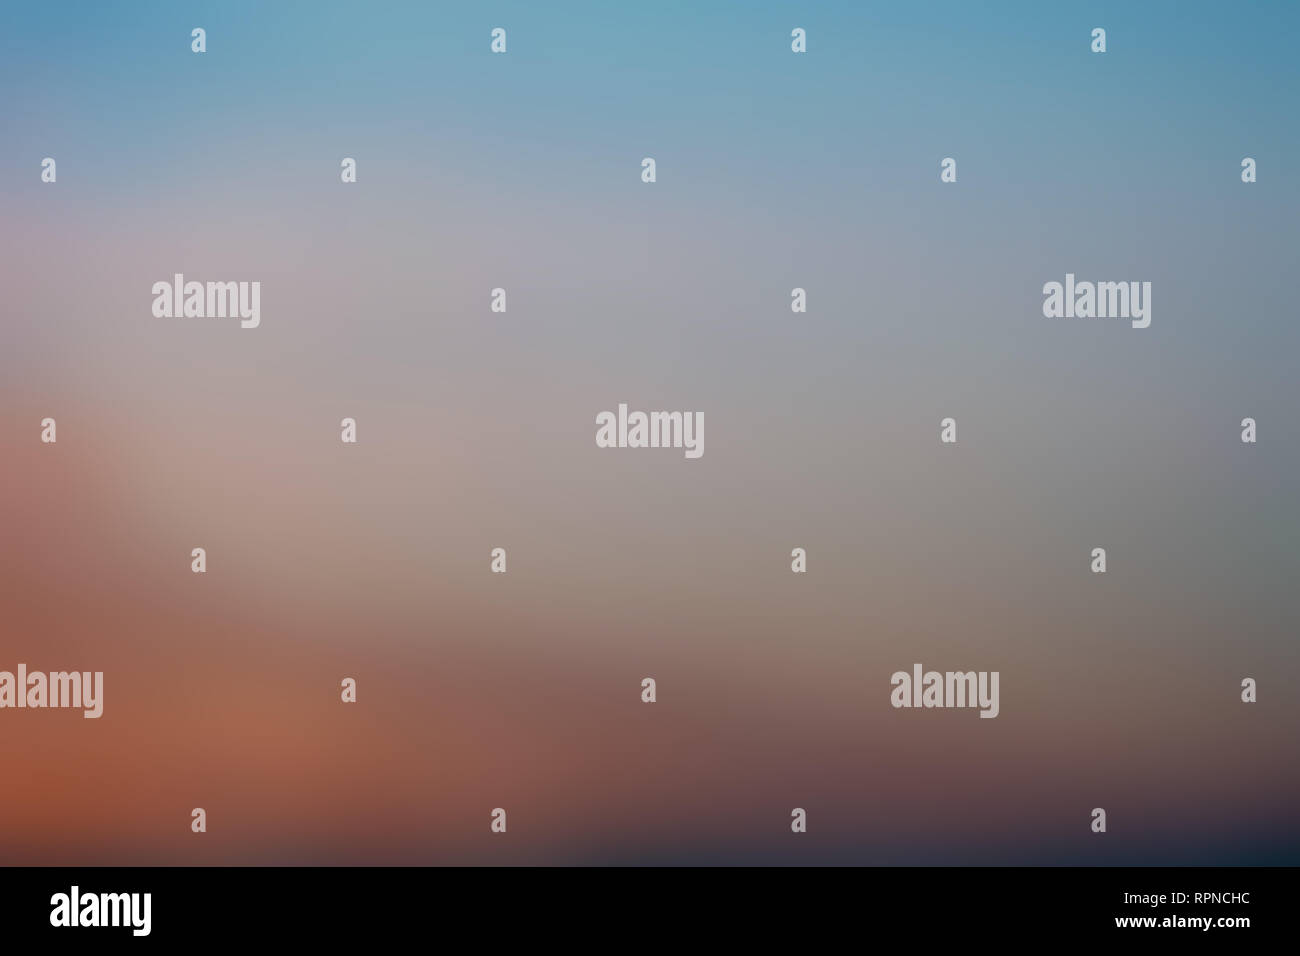 texture background gently dreamy picturesque - Stock Image